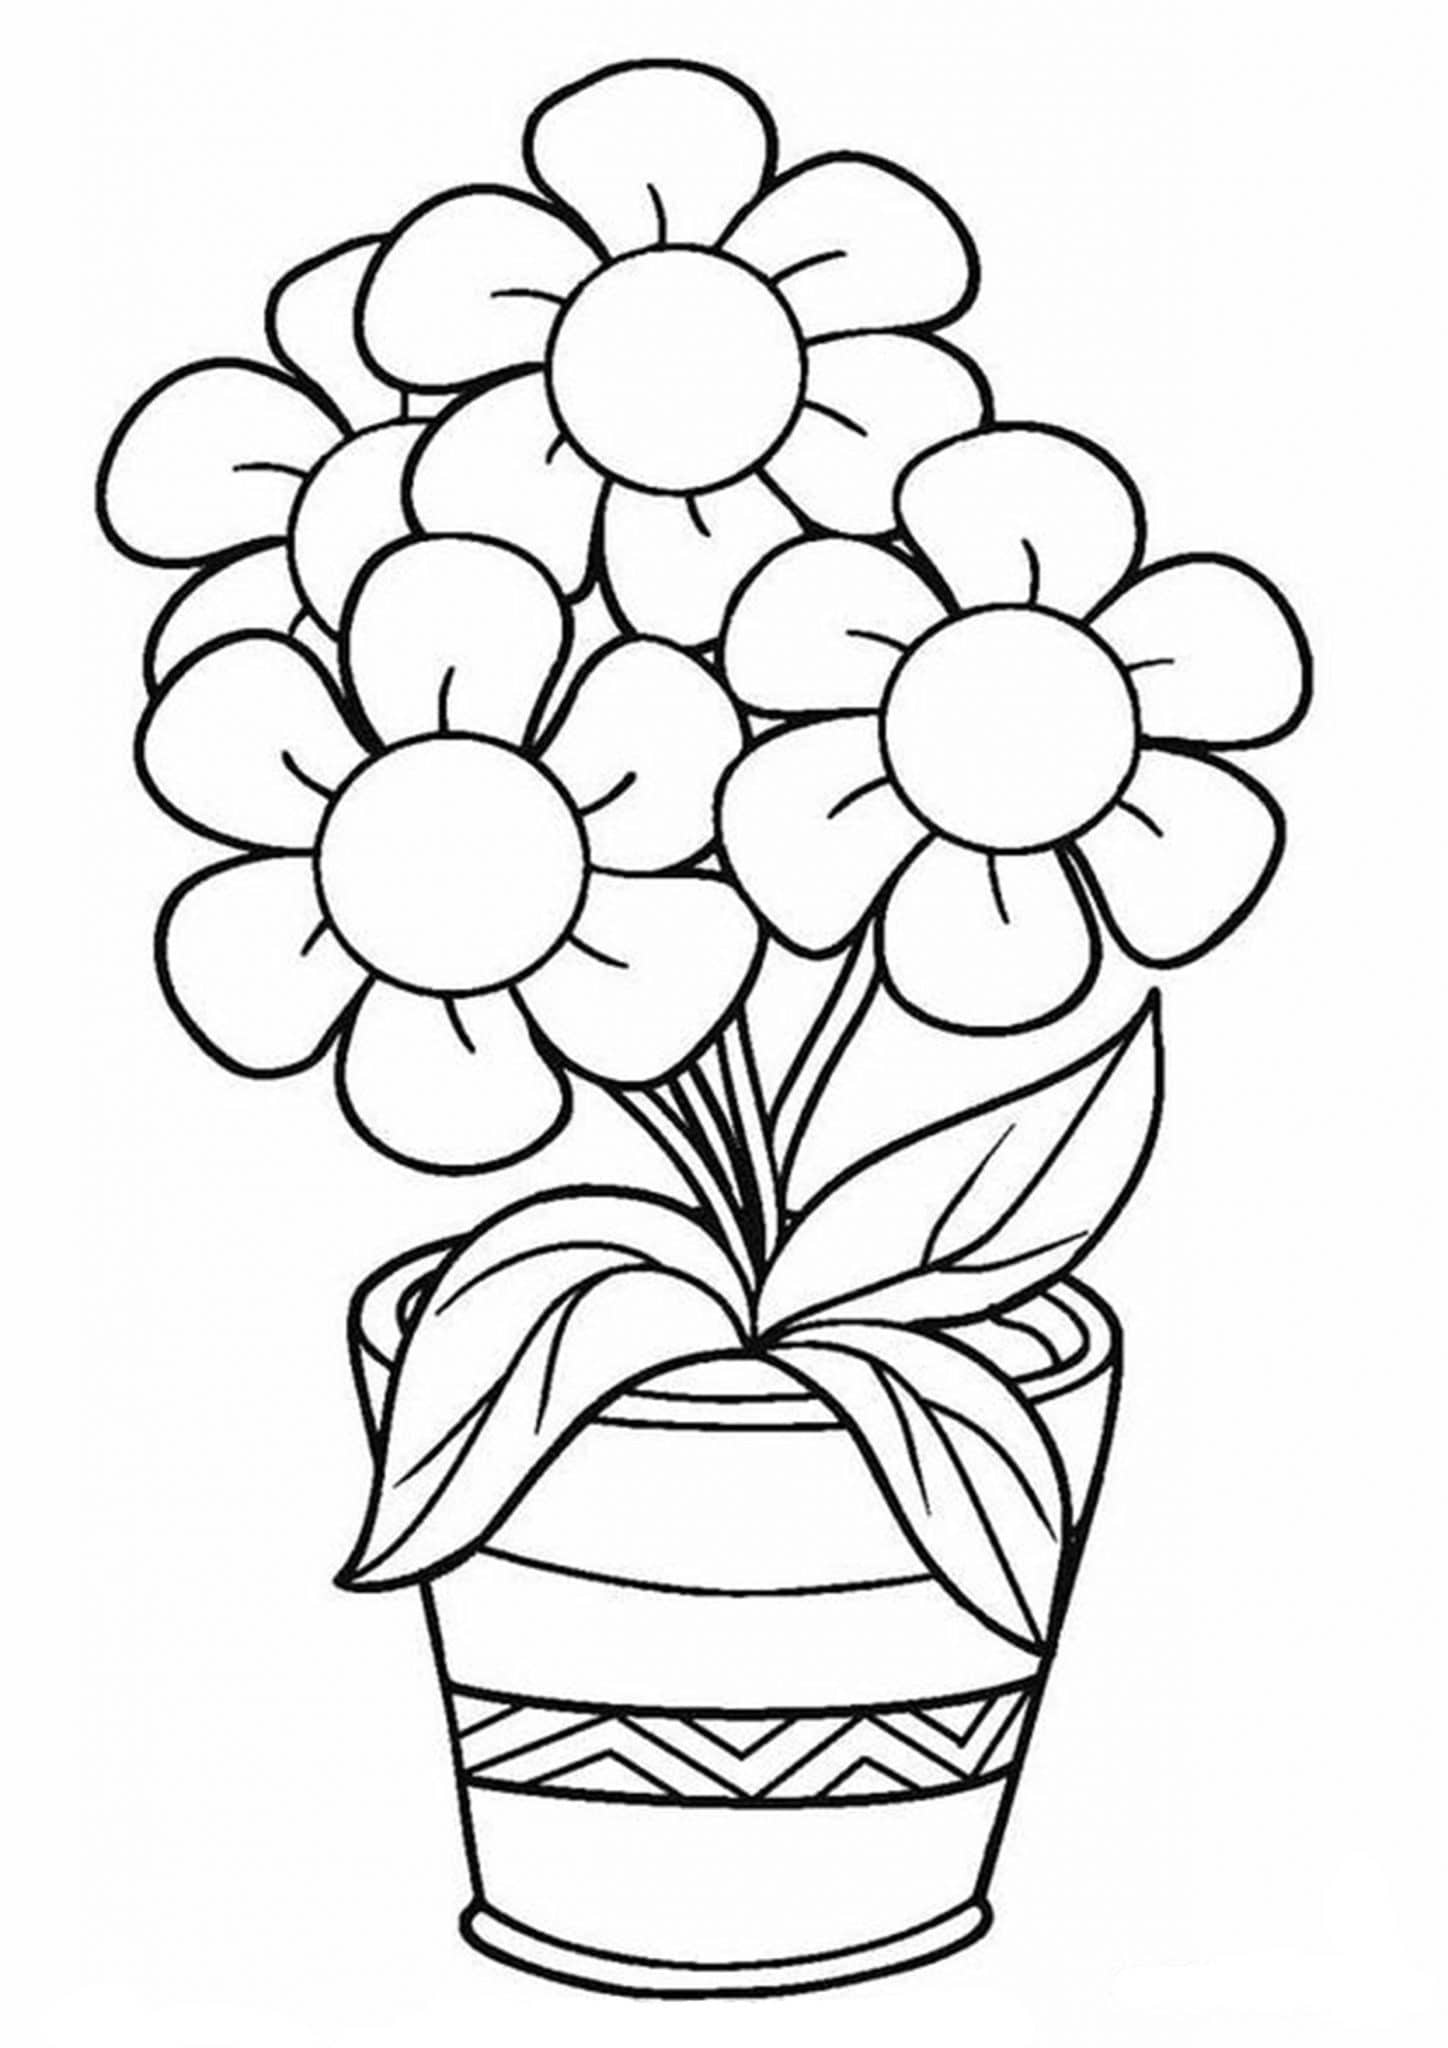 coloring picture of flower free printable flower coloring pages for kids cool2bkids coloring of picture flower